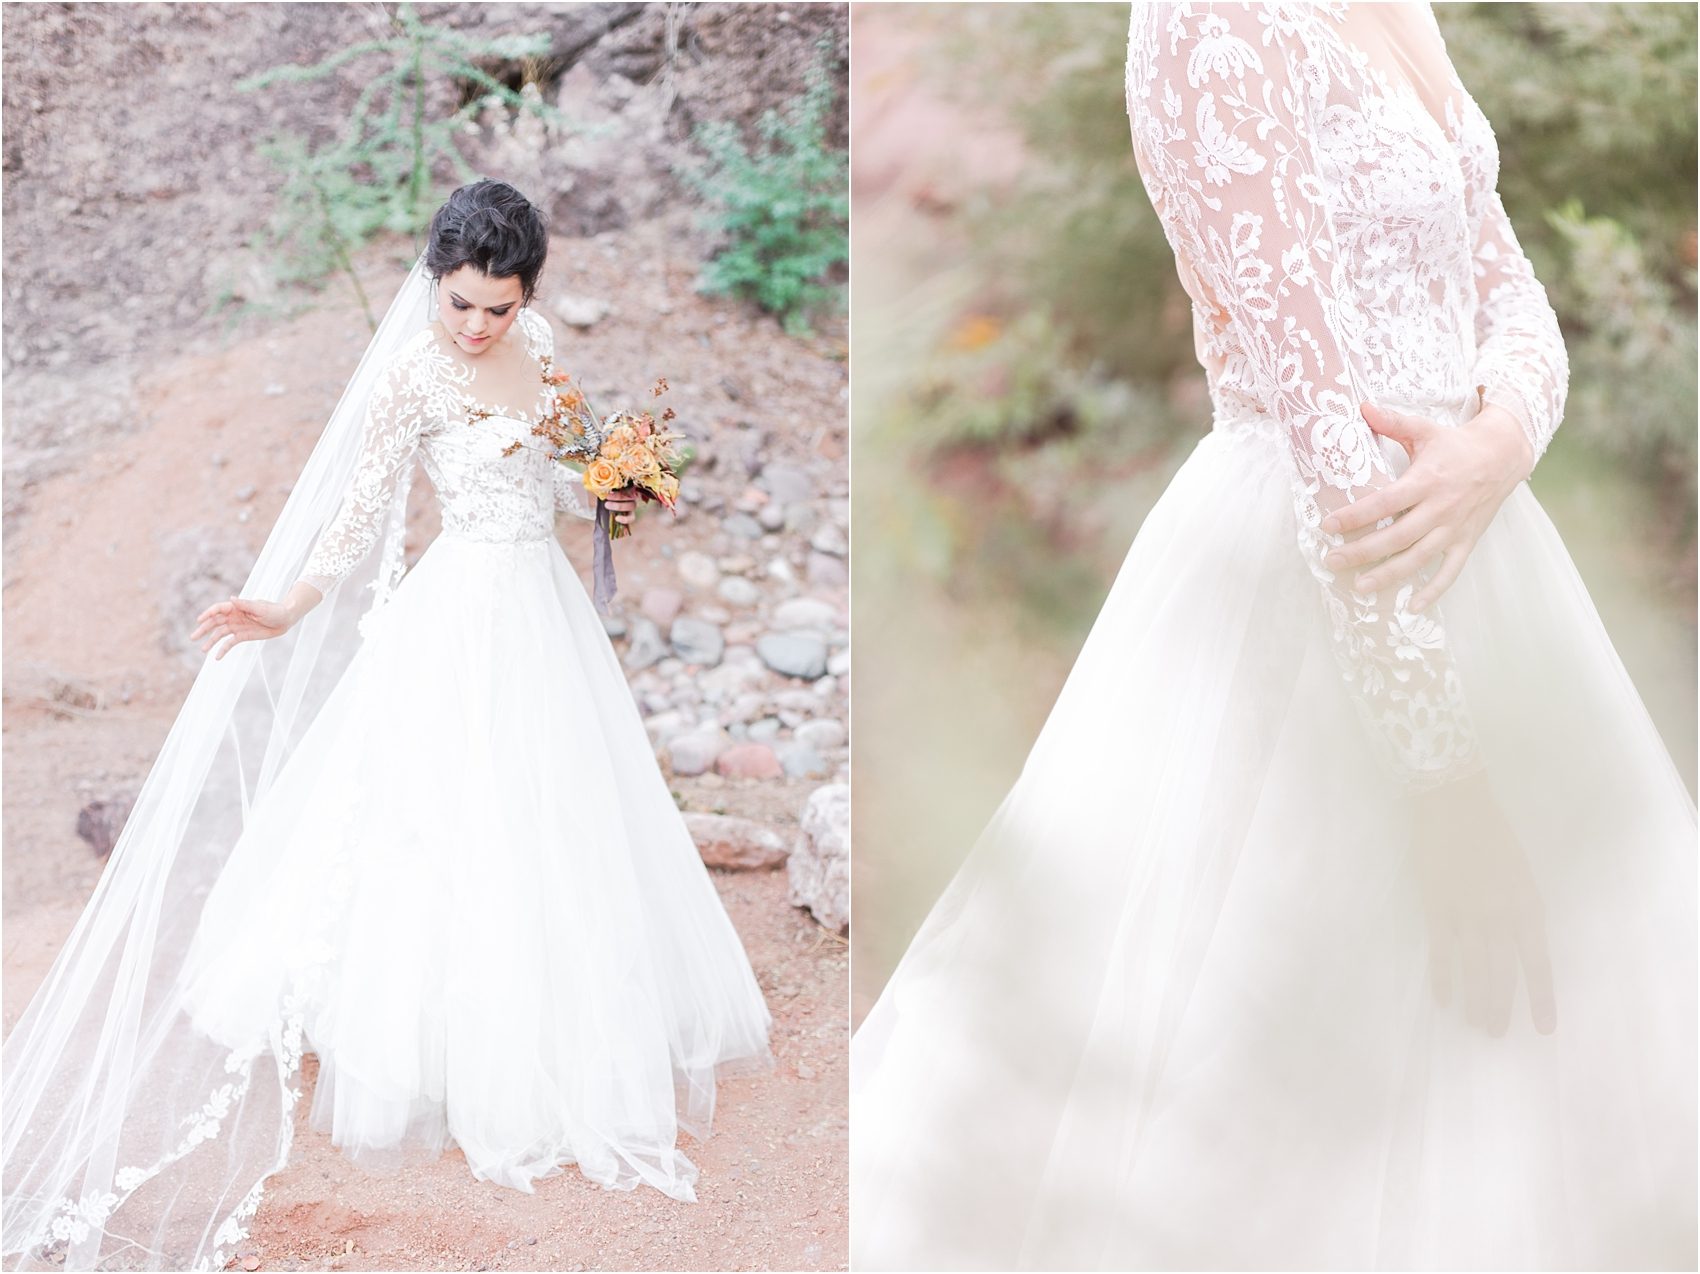 paris-and-ballerina-inspired-bride-wedding-photos-at-phoenix-marriott-tempe-at-the-buttes-in-tempe-arizona-by-courtney-carolyn-photography_0007.jpg